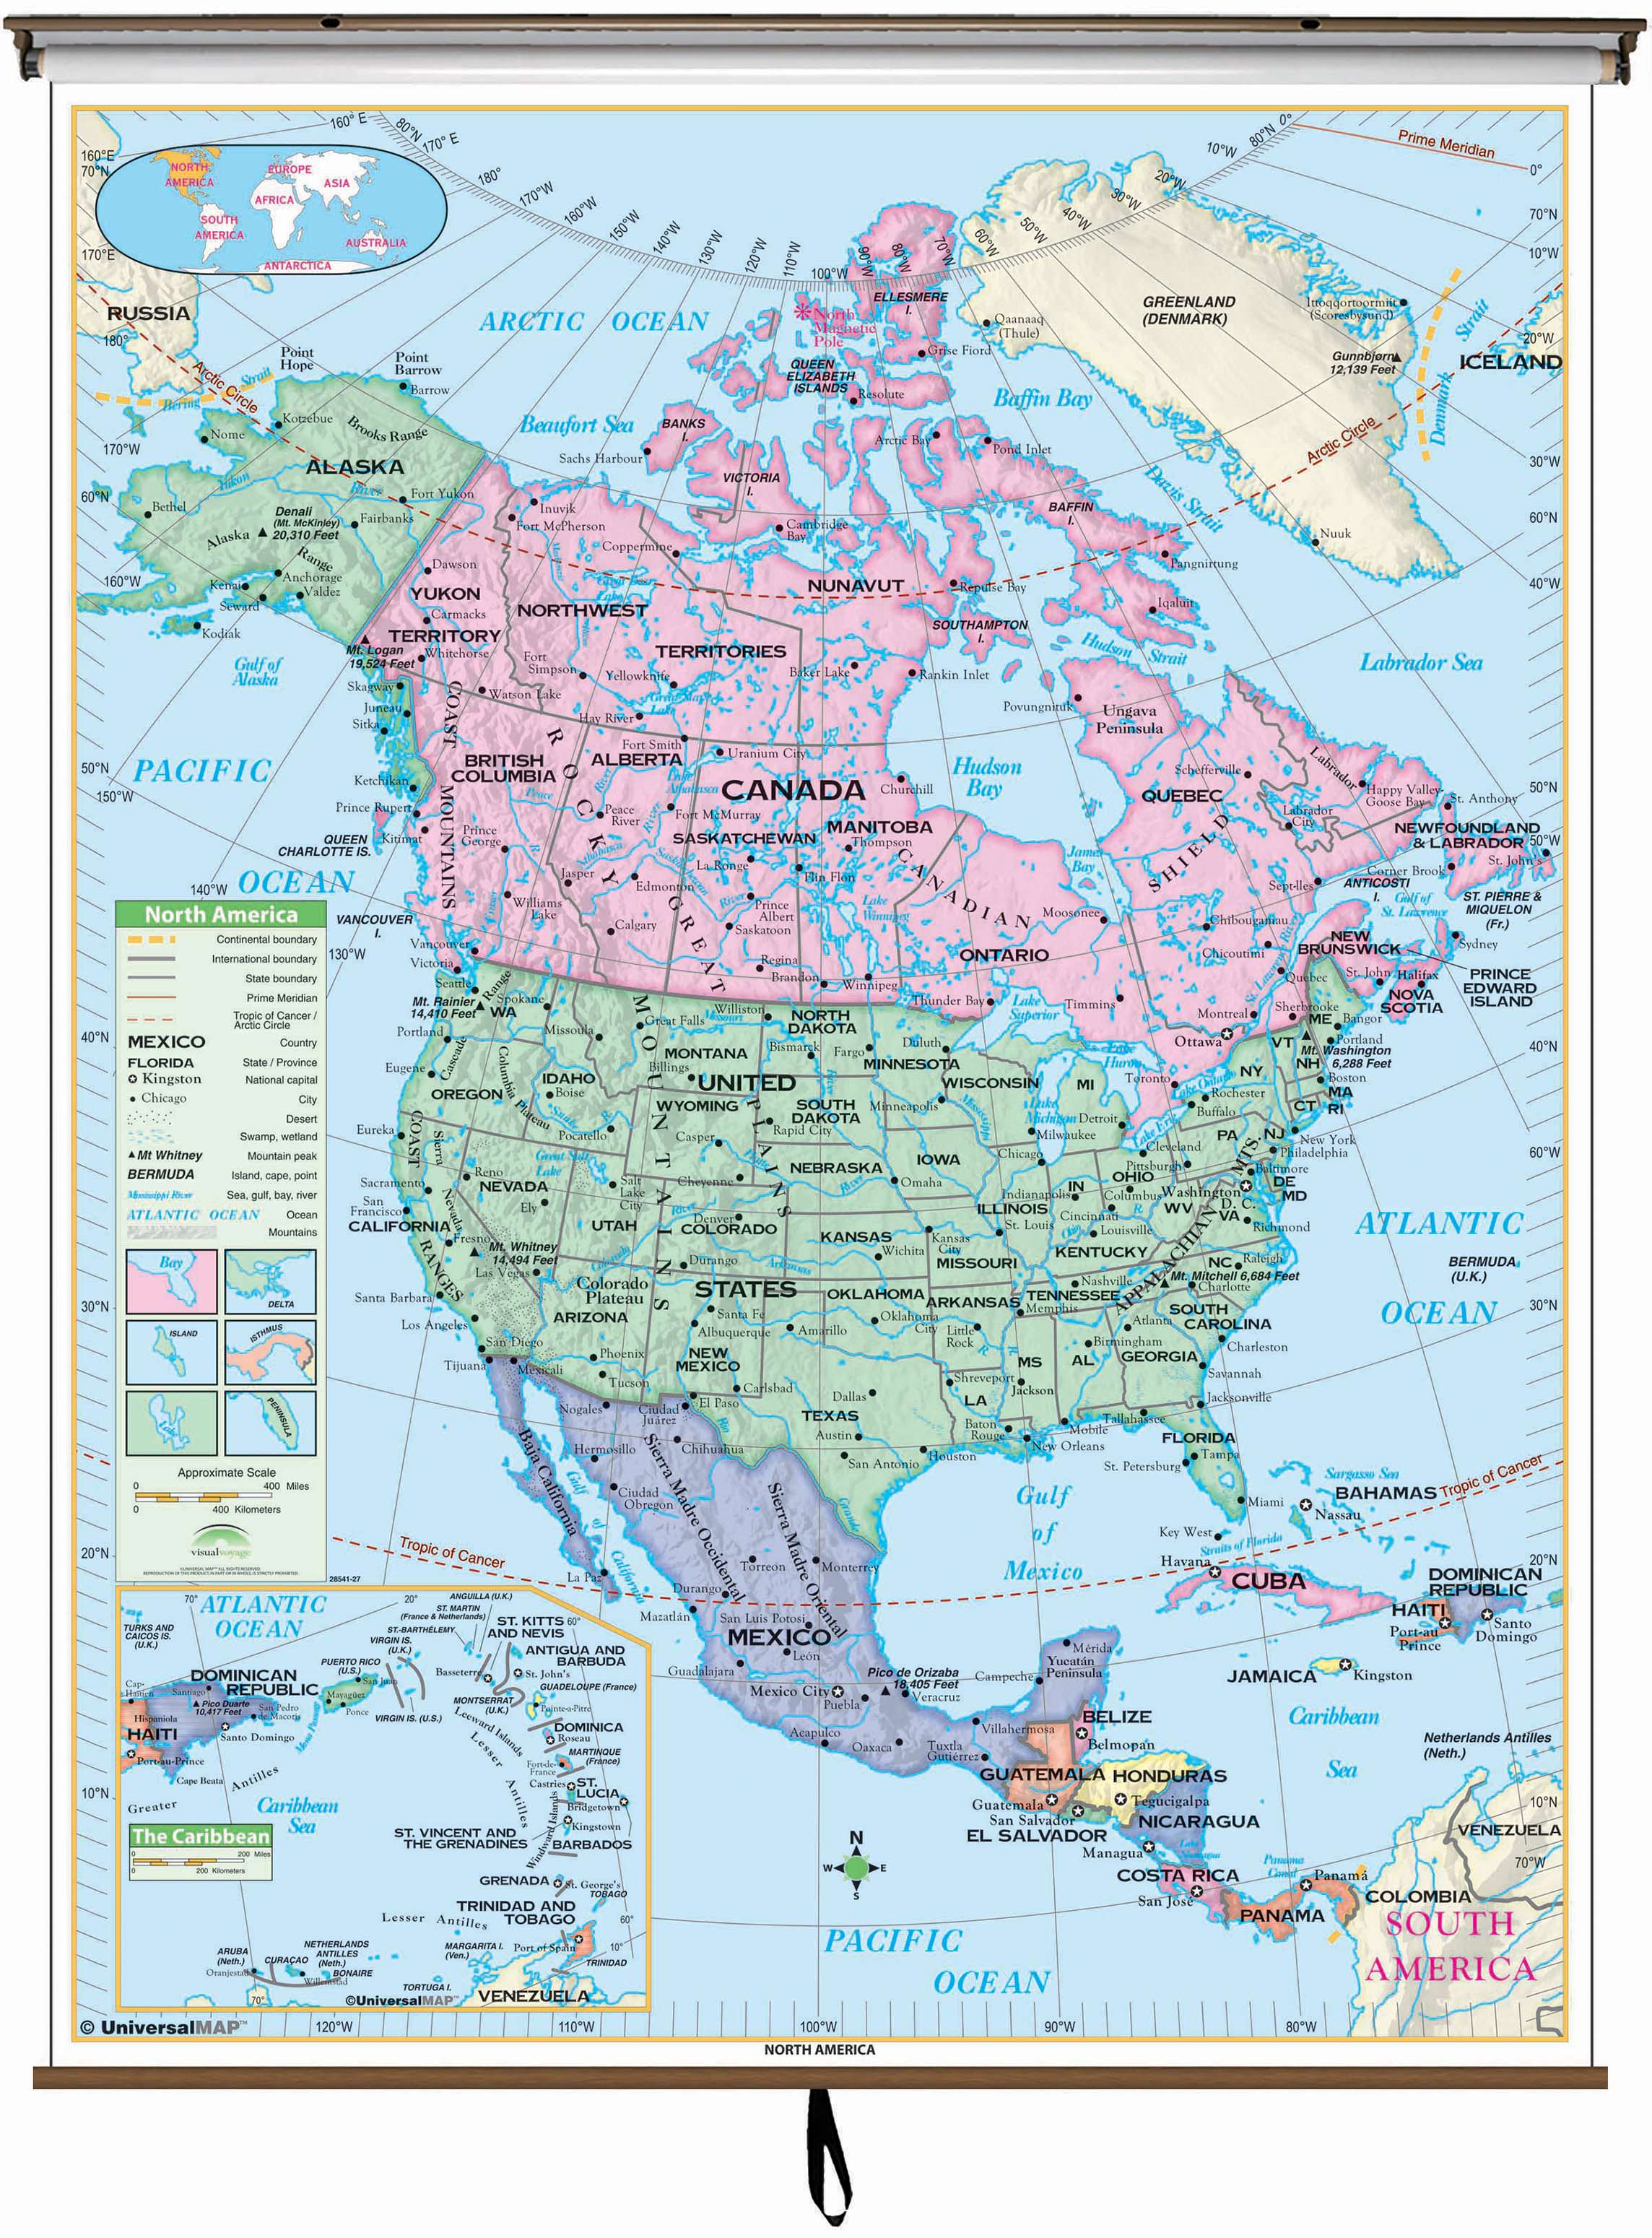 North America Essential Clroom Wall Map on Roller w/ Backboard on letter n america, map latin america, map of america, map o america, globe n america, map n orleans, map central america, time zone america,